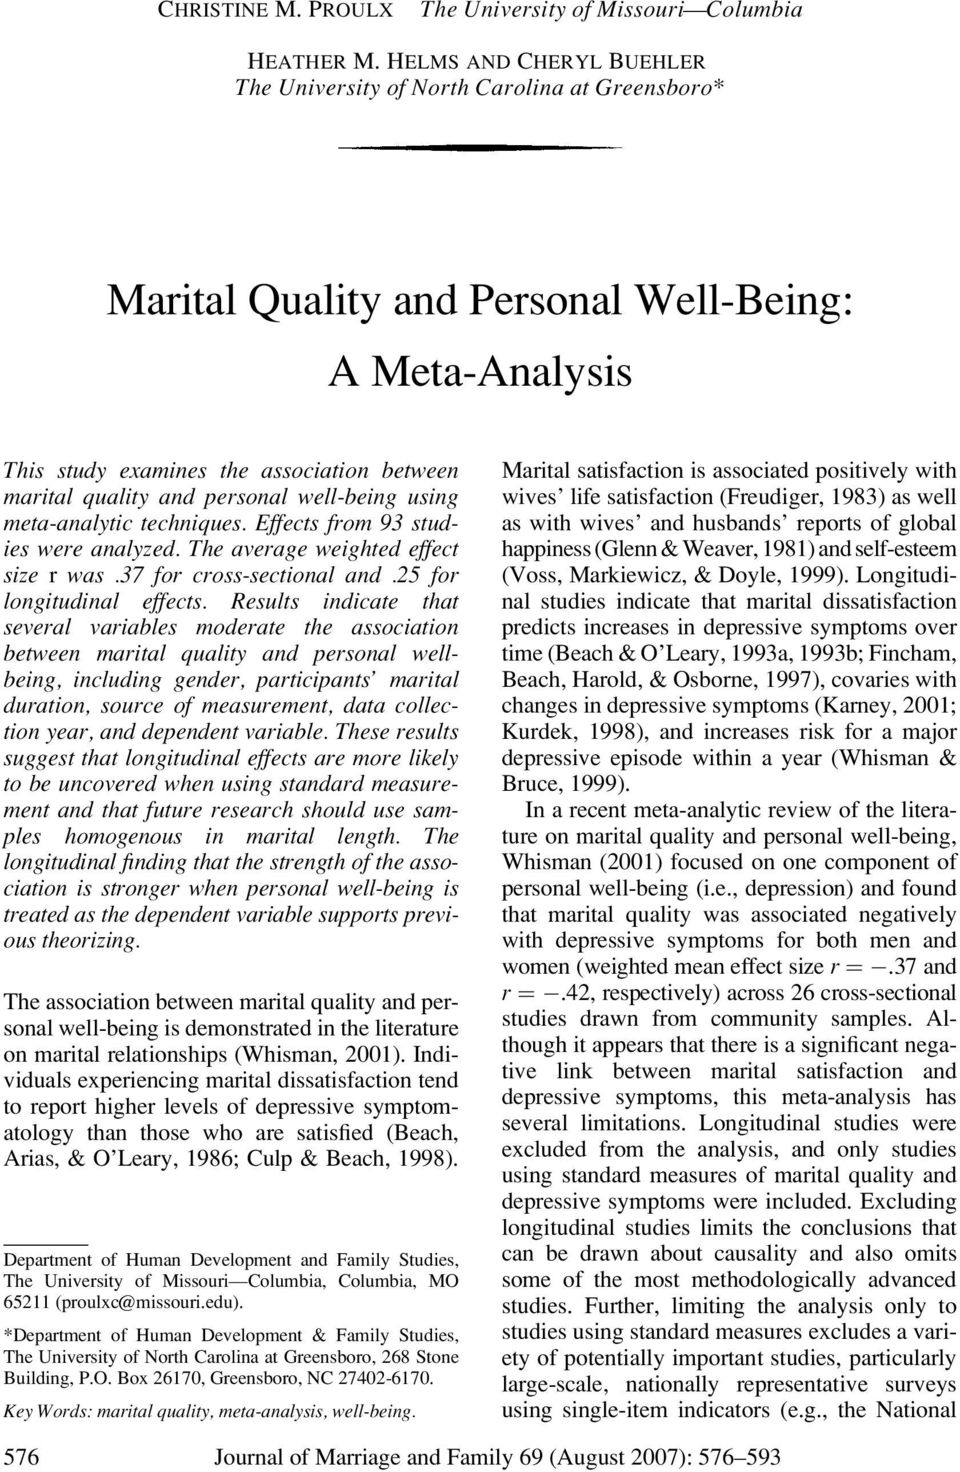 personal well-being using meta-analytic techniques. Effects from 93 studies were analyzed. The average weighted effect size r was.37 for cross-sectional and.25 for longitudinal effects.